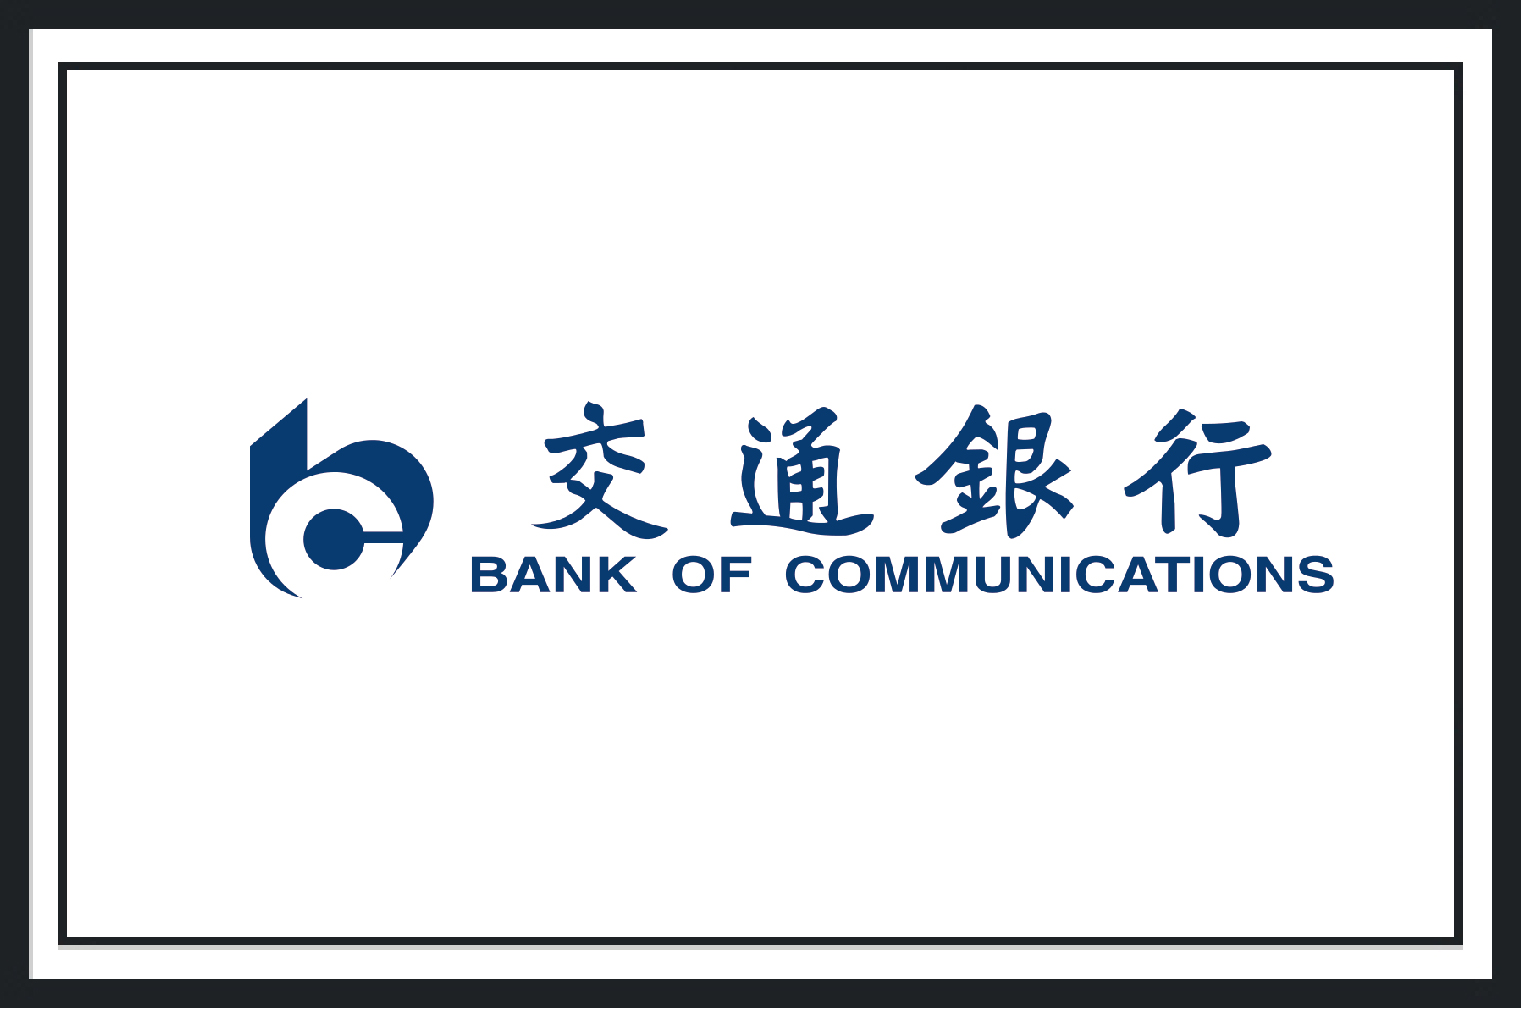 Bank of communications